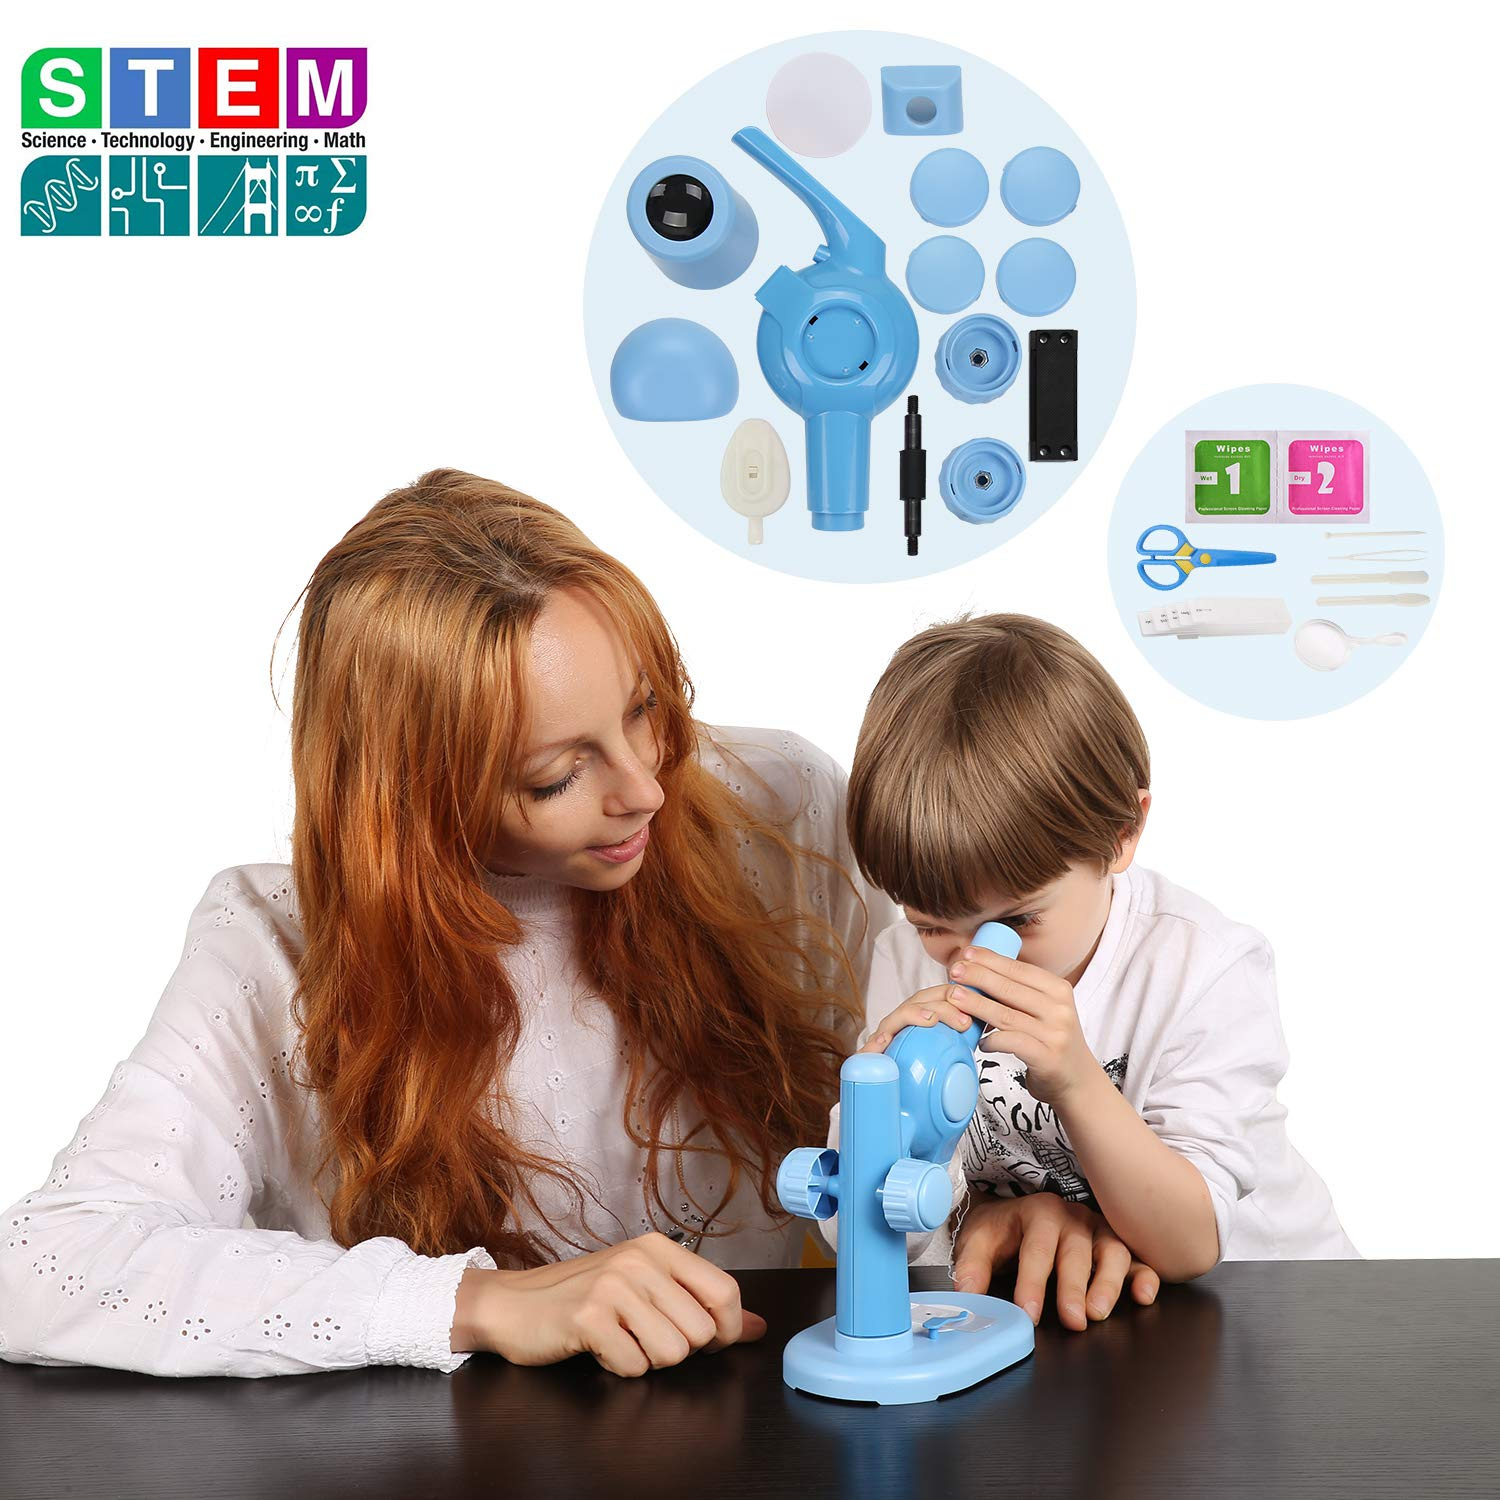 Donzy Take Apart Microscope Toy - Educational DIY STEM Microscope for Preschoolers with Assemable Parts, 15X Science Microscope Take Apart Toy with 5 Prepared Slides for 4-8 Year Old Kids (Blue)